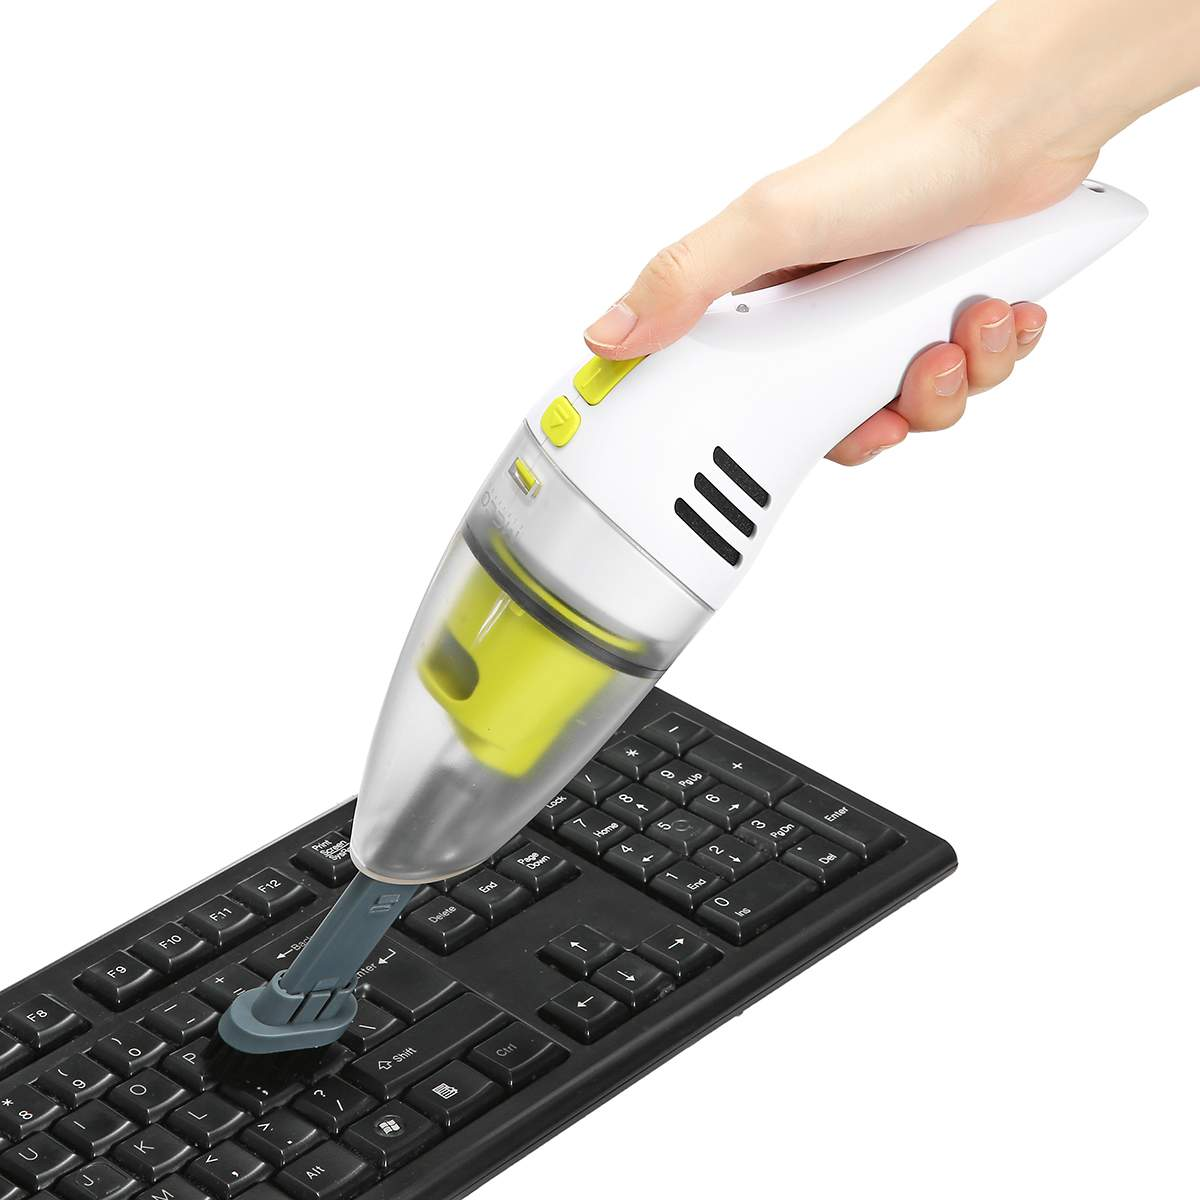 Strong  Mini Vacuum Cleaner USB Recharging Handheld Wireless Portable Wet & Dry Dual Use for Home Car Laptop PC Keyboard